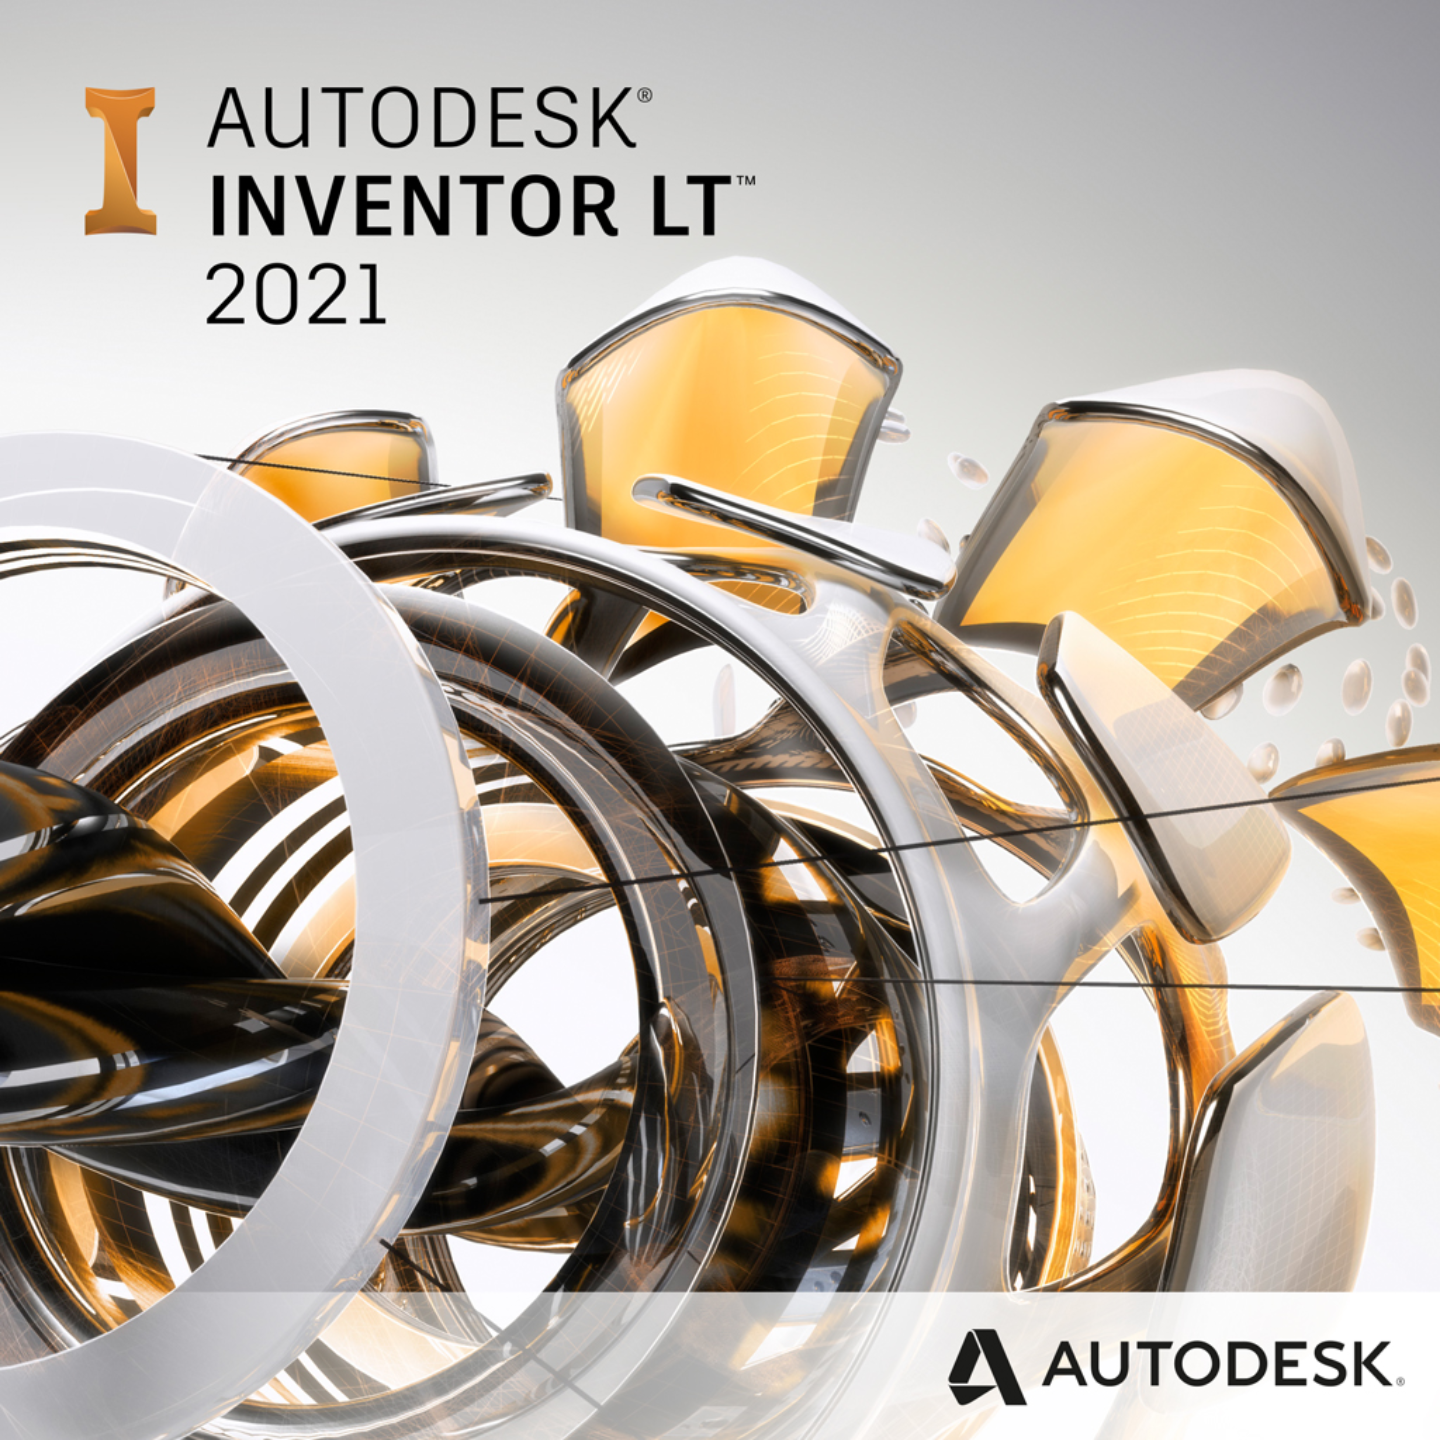 Autodesk Autocad Inventor LT Suite 2021 (1-Year Subscription)